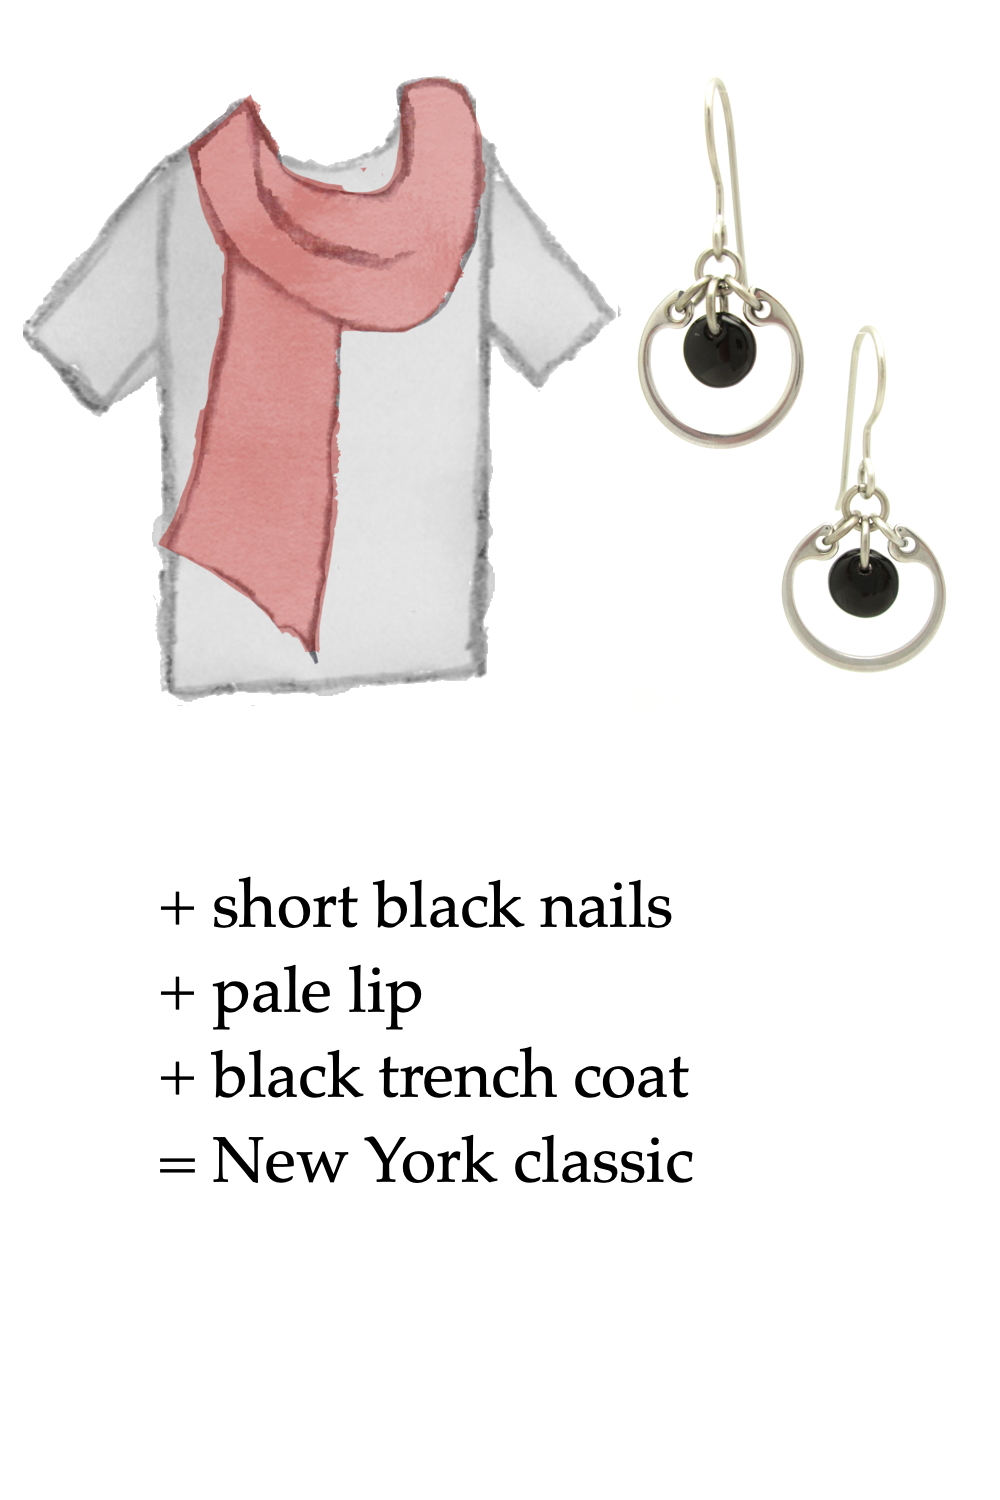 style sketch of a light gray tee shirt and pale red scarf with Wraptillion's small modern circle silver-toned earrings in black; text on image reads: + short black nails + pale lip + black trench coat = New York classic